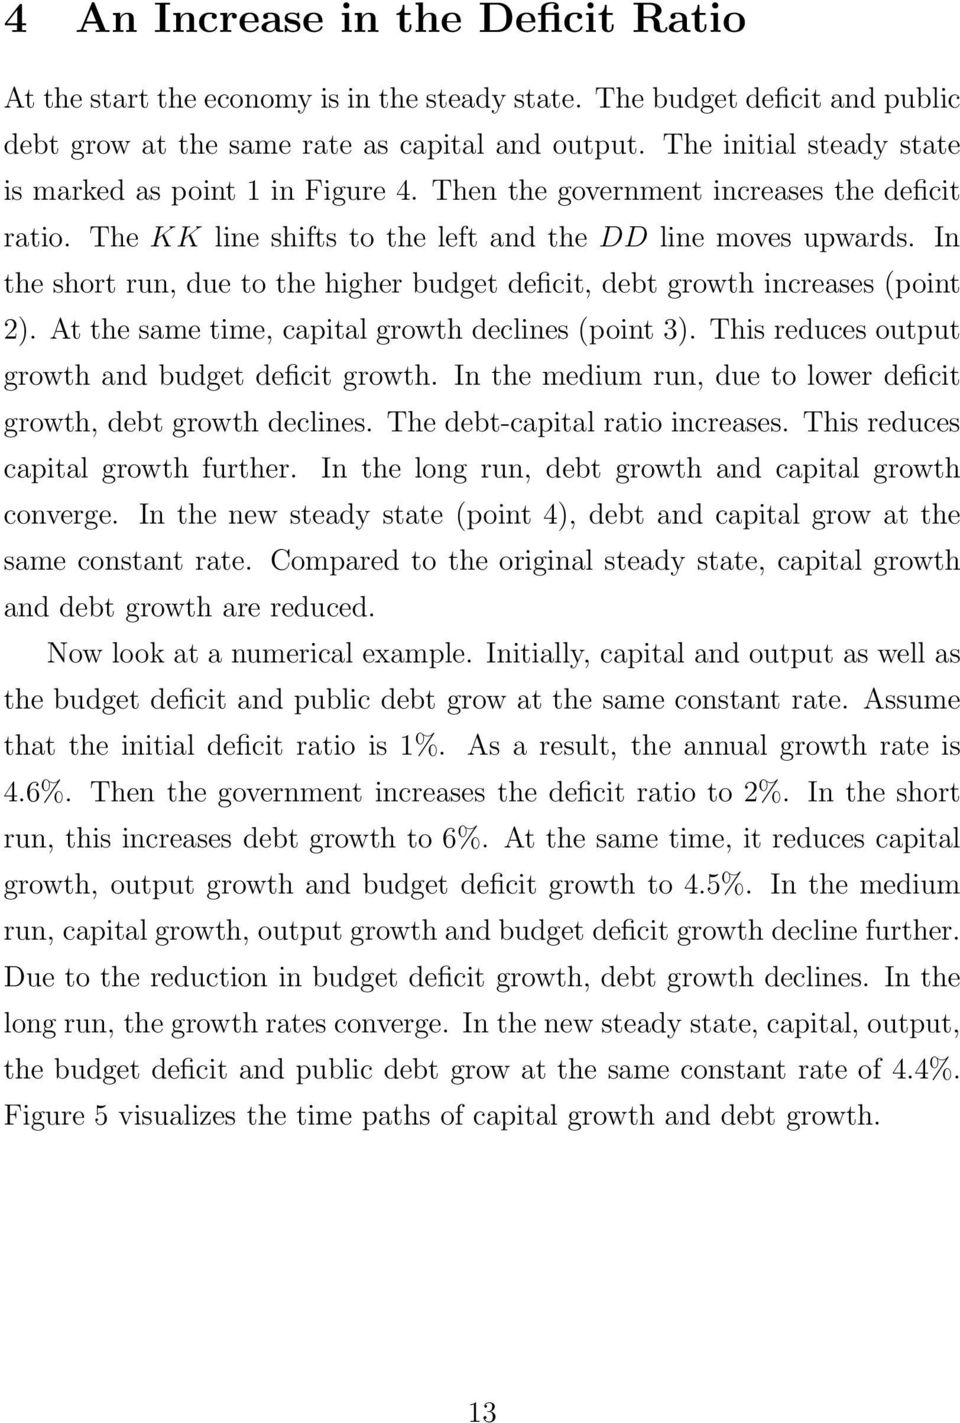 In the short run, due to the higher budget deficit, debt growth increases (point 2). At the same time, capital growth declines (point 3). This reduces output growth and budget deficit growth.